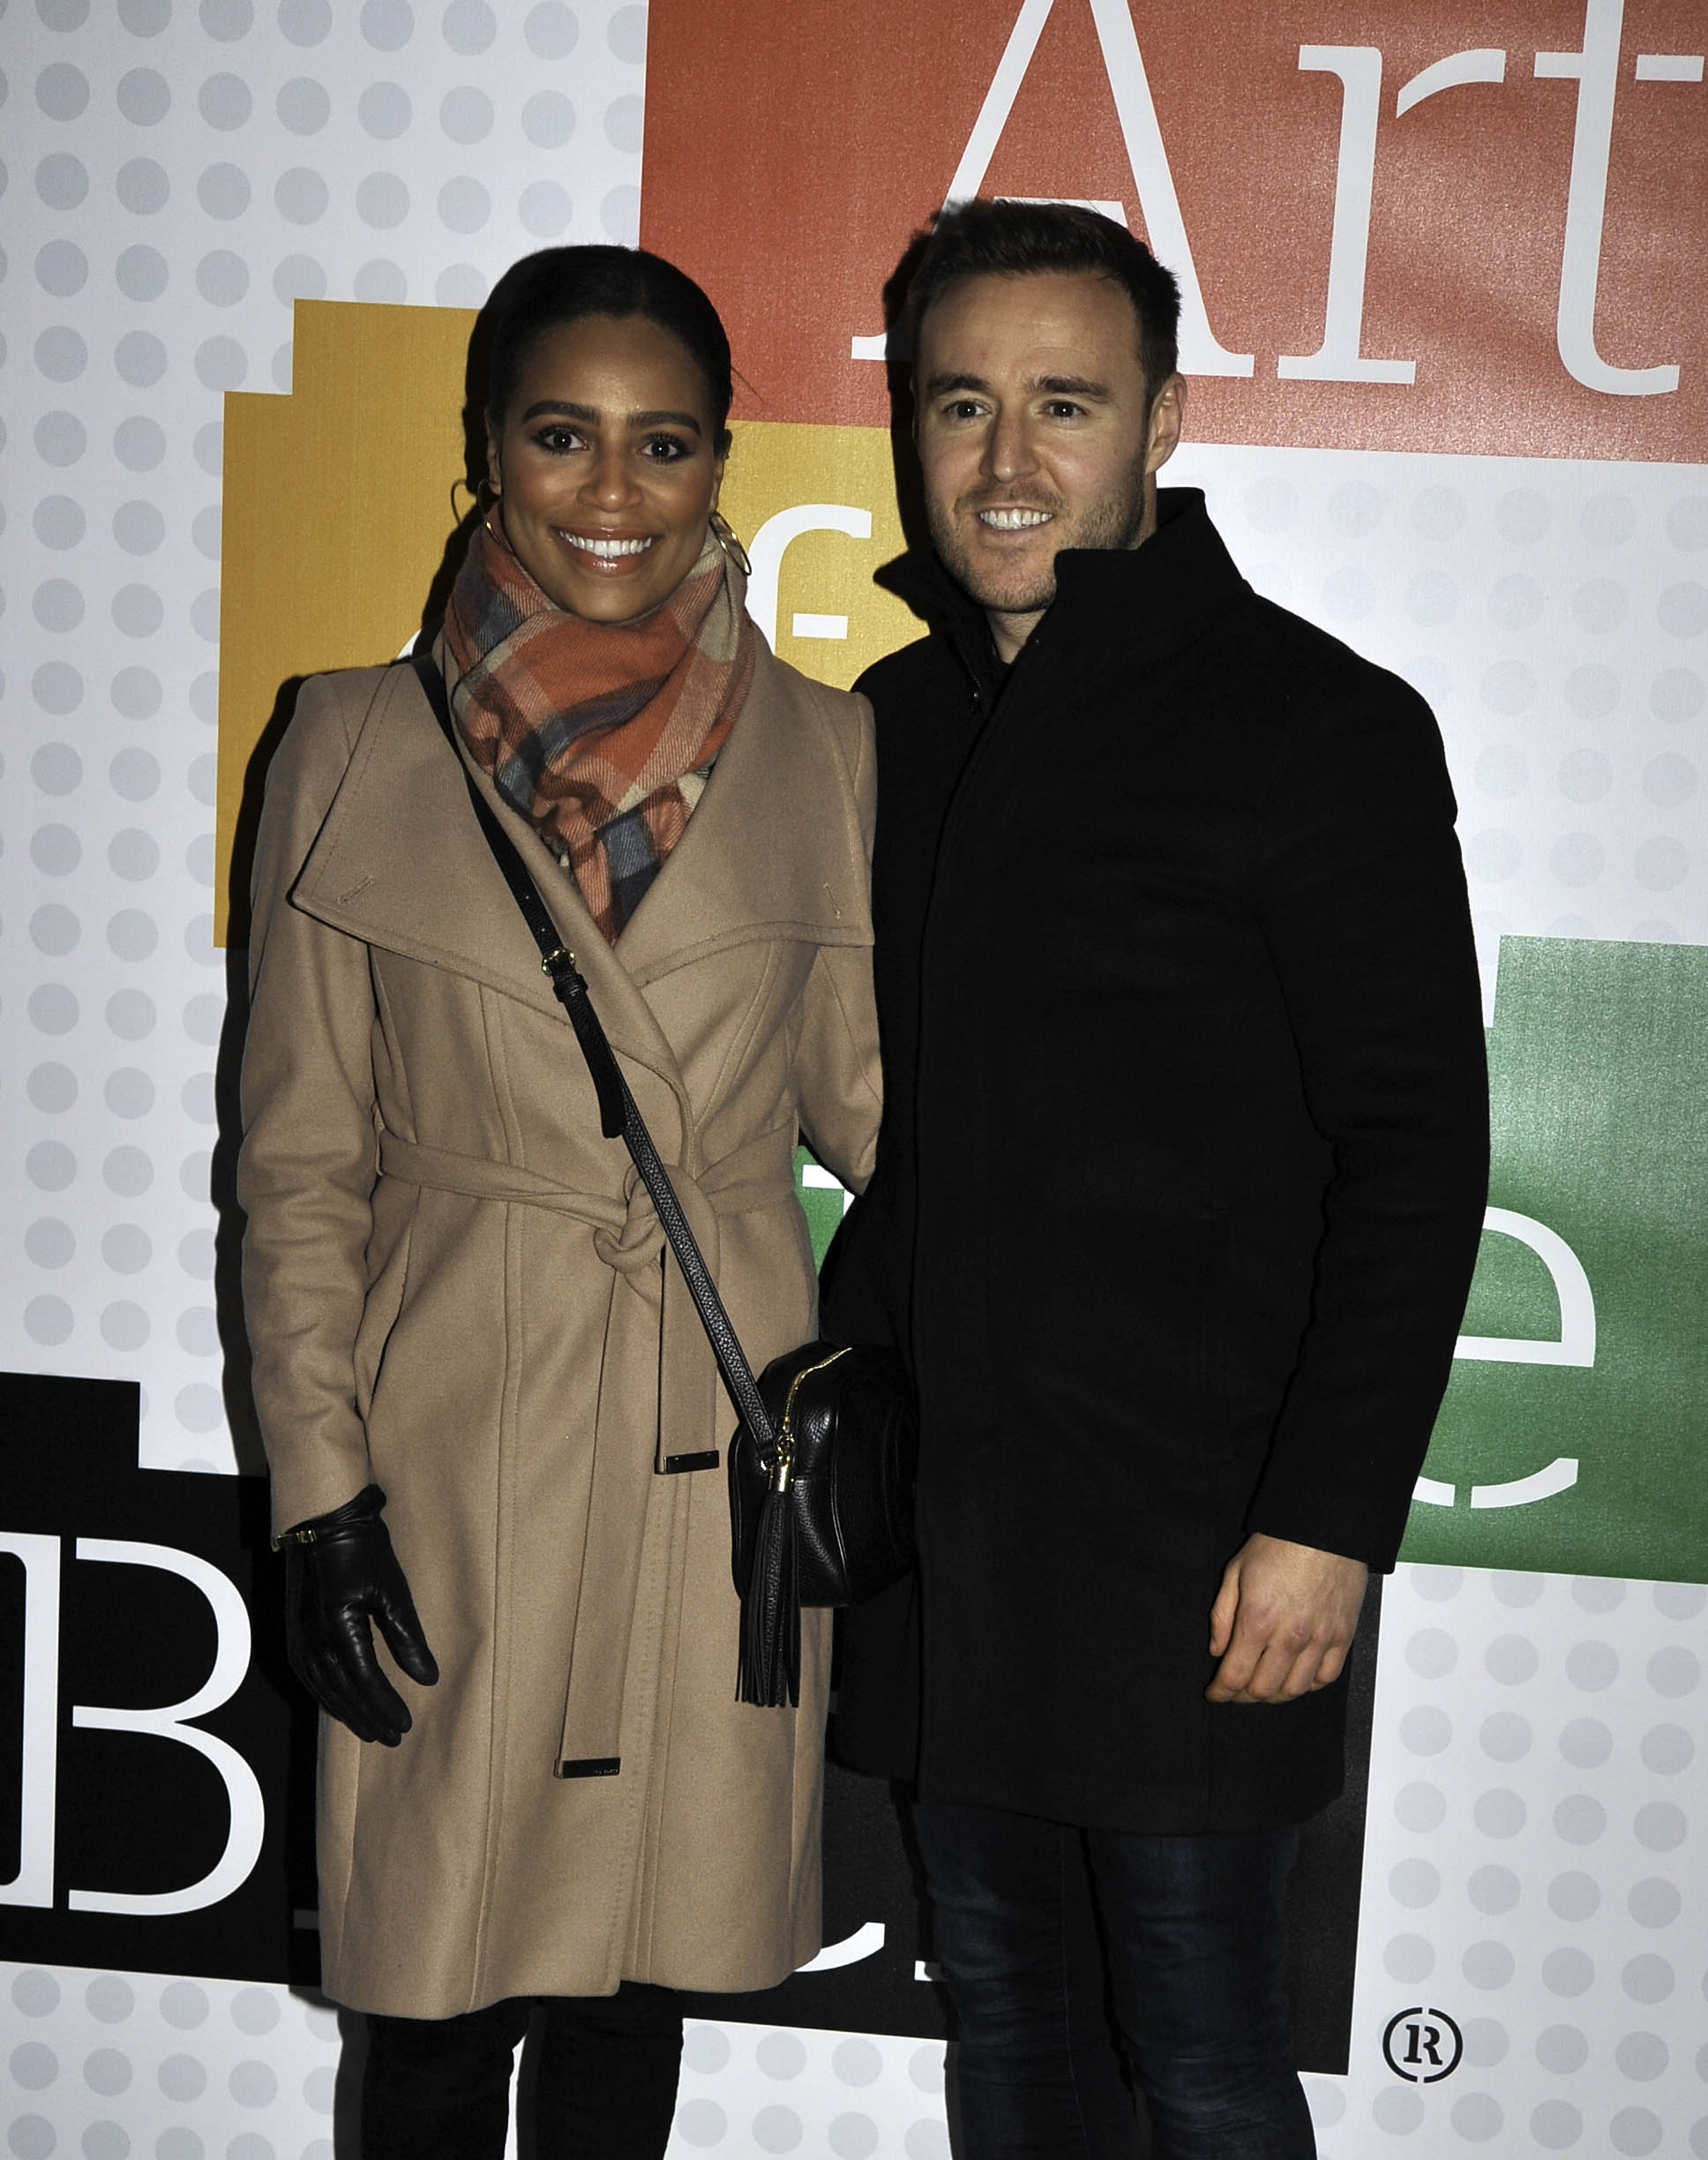 People arrive at The art of Brick exhibition in Manchester City Centre. Pictured: Tisha Merry,Alan Halsall Ref: SPL5131084 221119 NON-EXCLUSIVE Picture by: SplashNews.com Splash News and Pictures Los Angeles: 310-821-2666 New York: 212-619-2666 London: +44 (0)20 7644 7656 Berlin: +49 175 3764 166 photodesk@splashnews.com World Rights